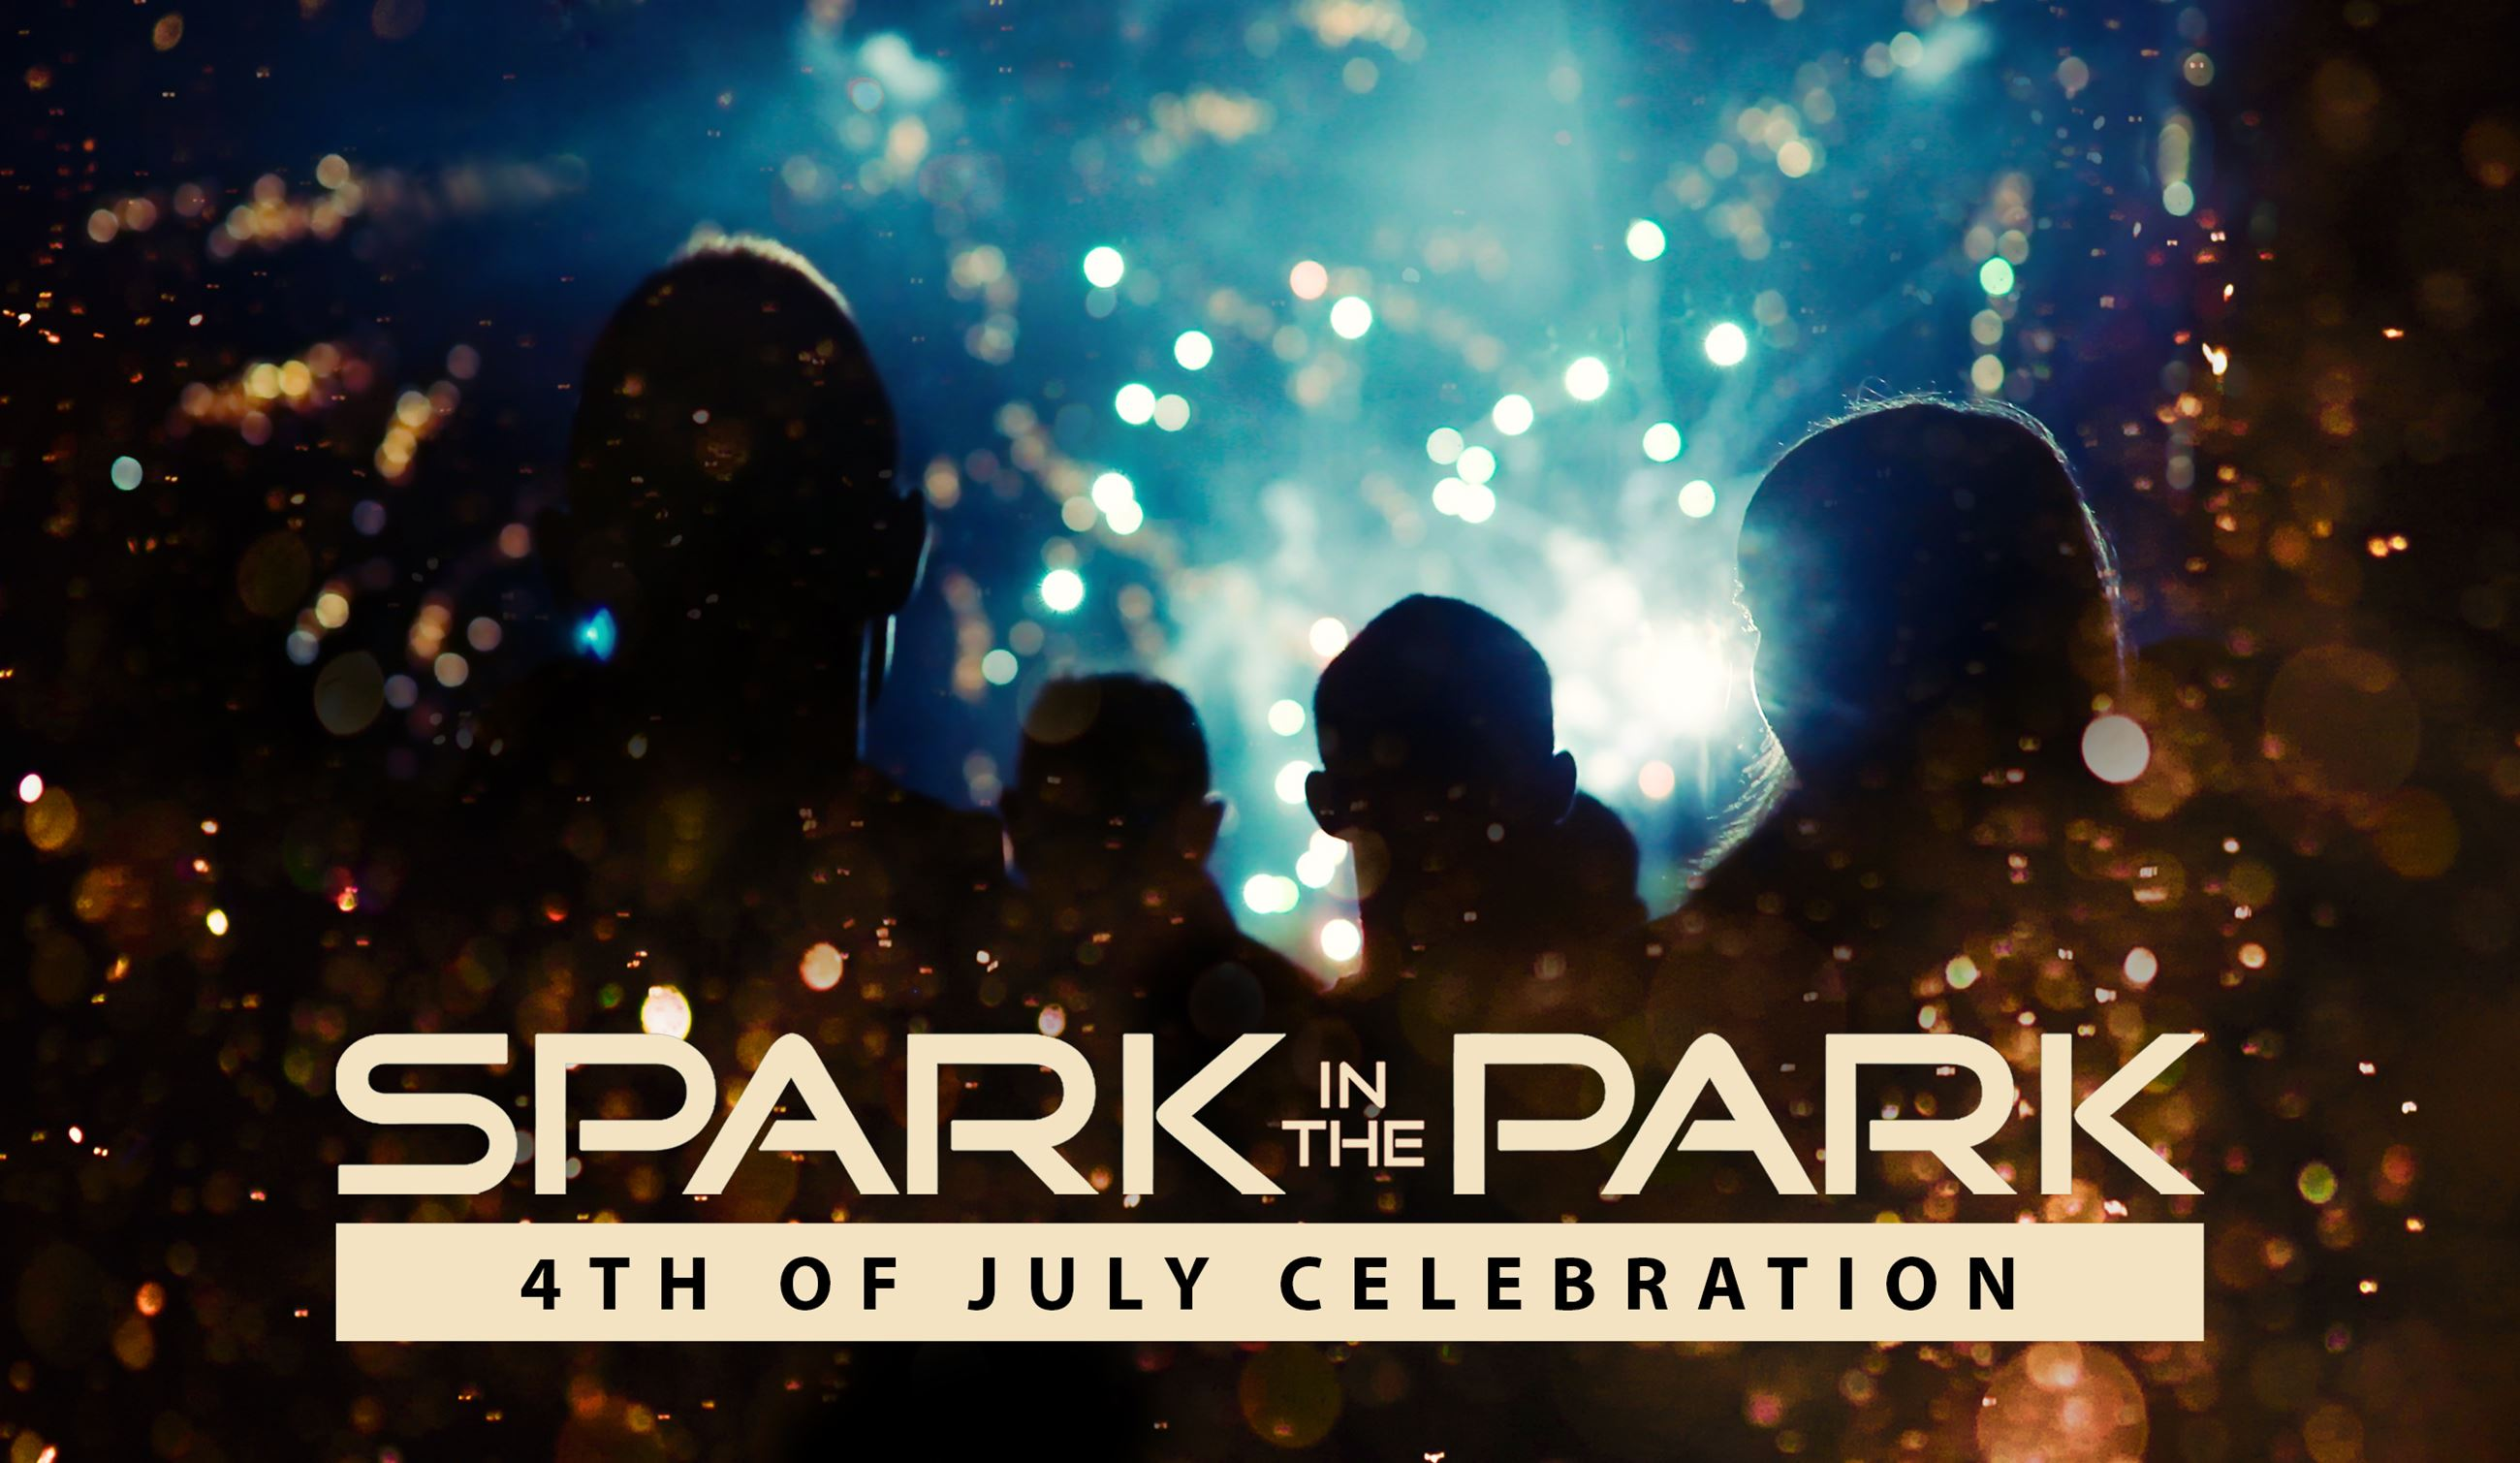 Spark in the Park Facebook Event Page Image